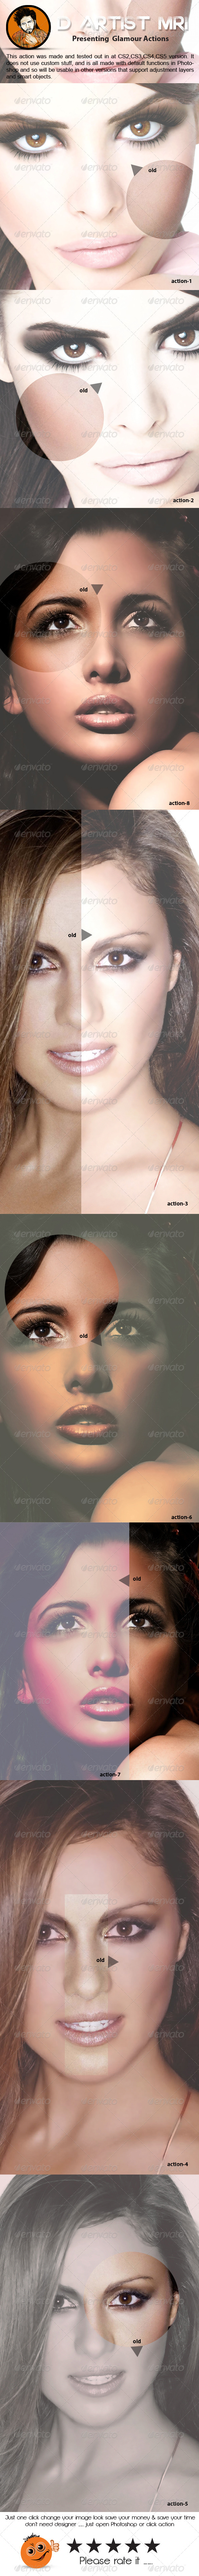 GraphicRiver Glamour Actions 8340689